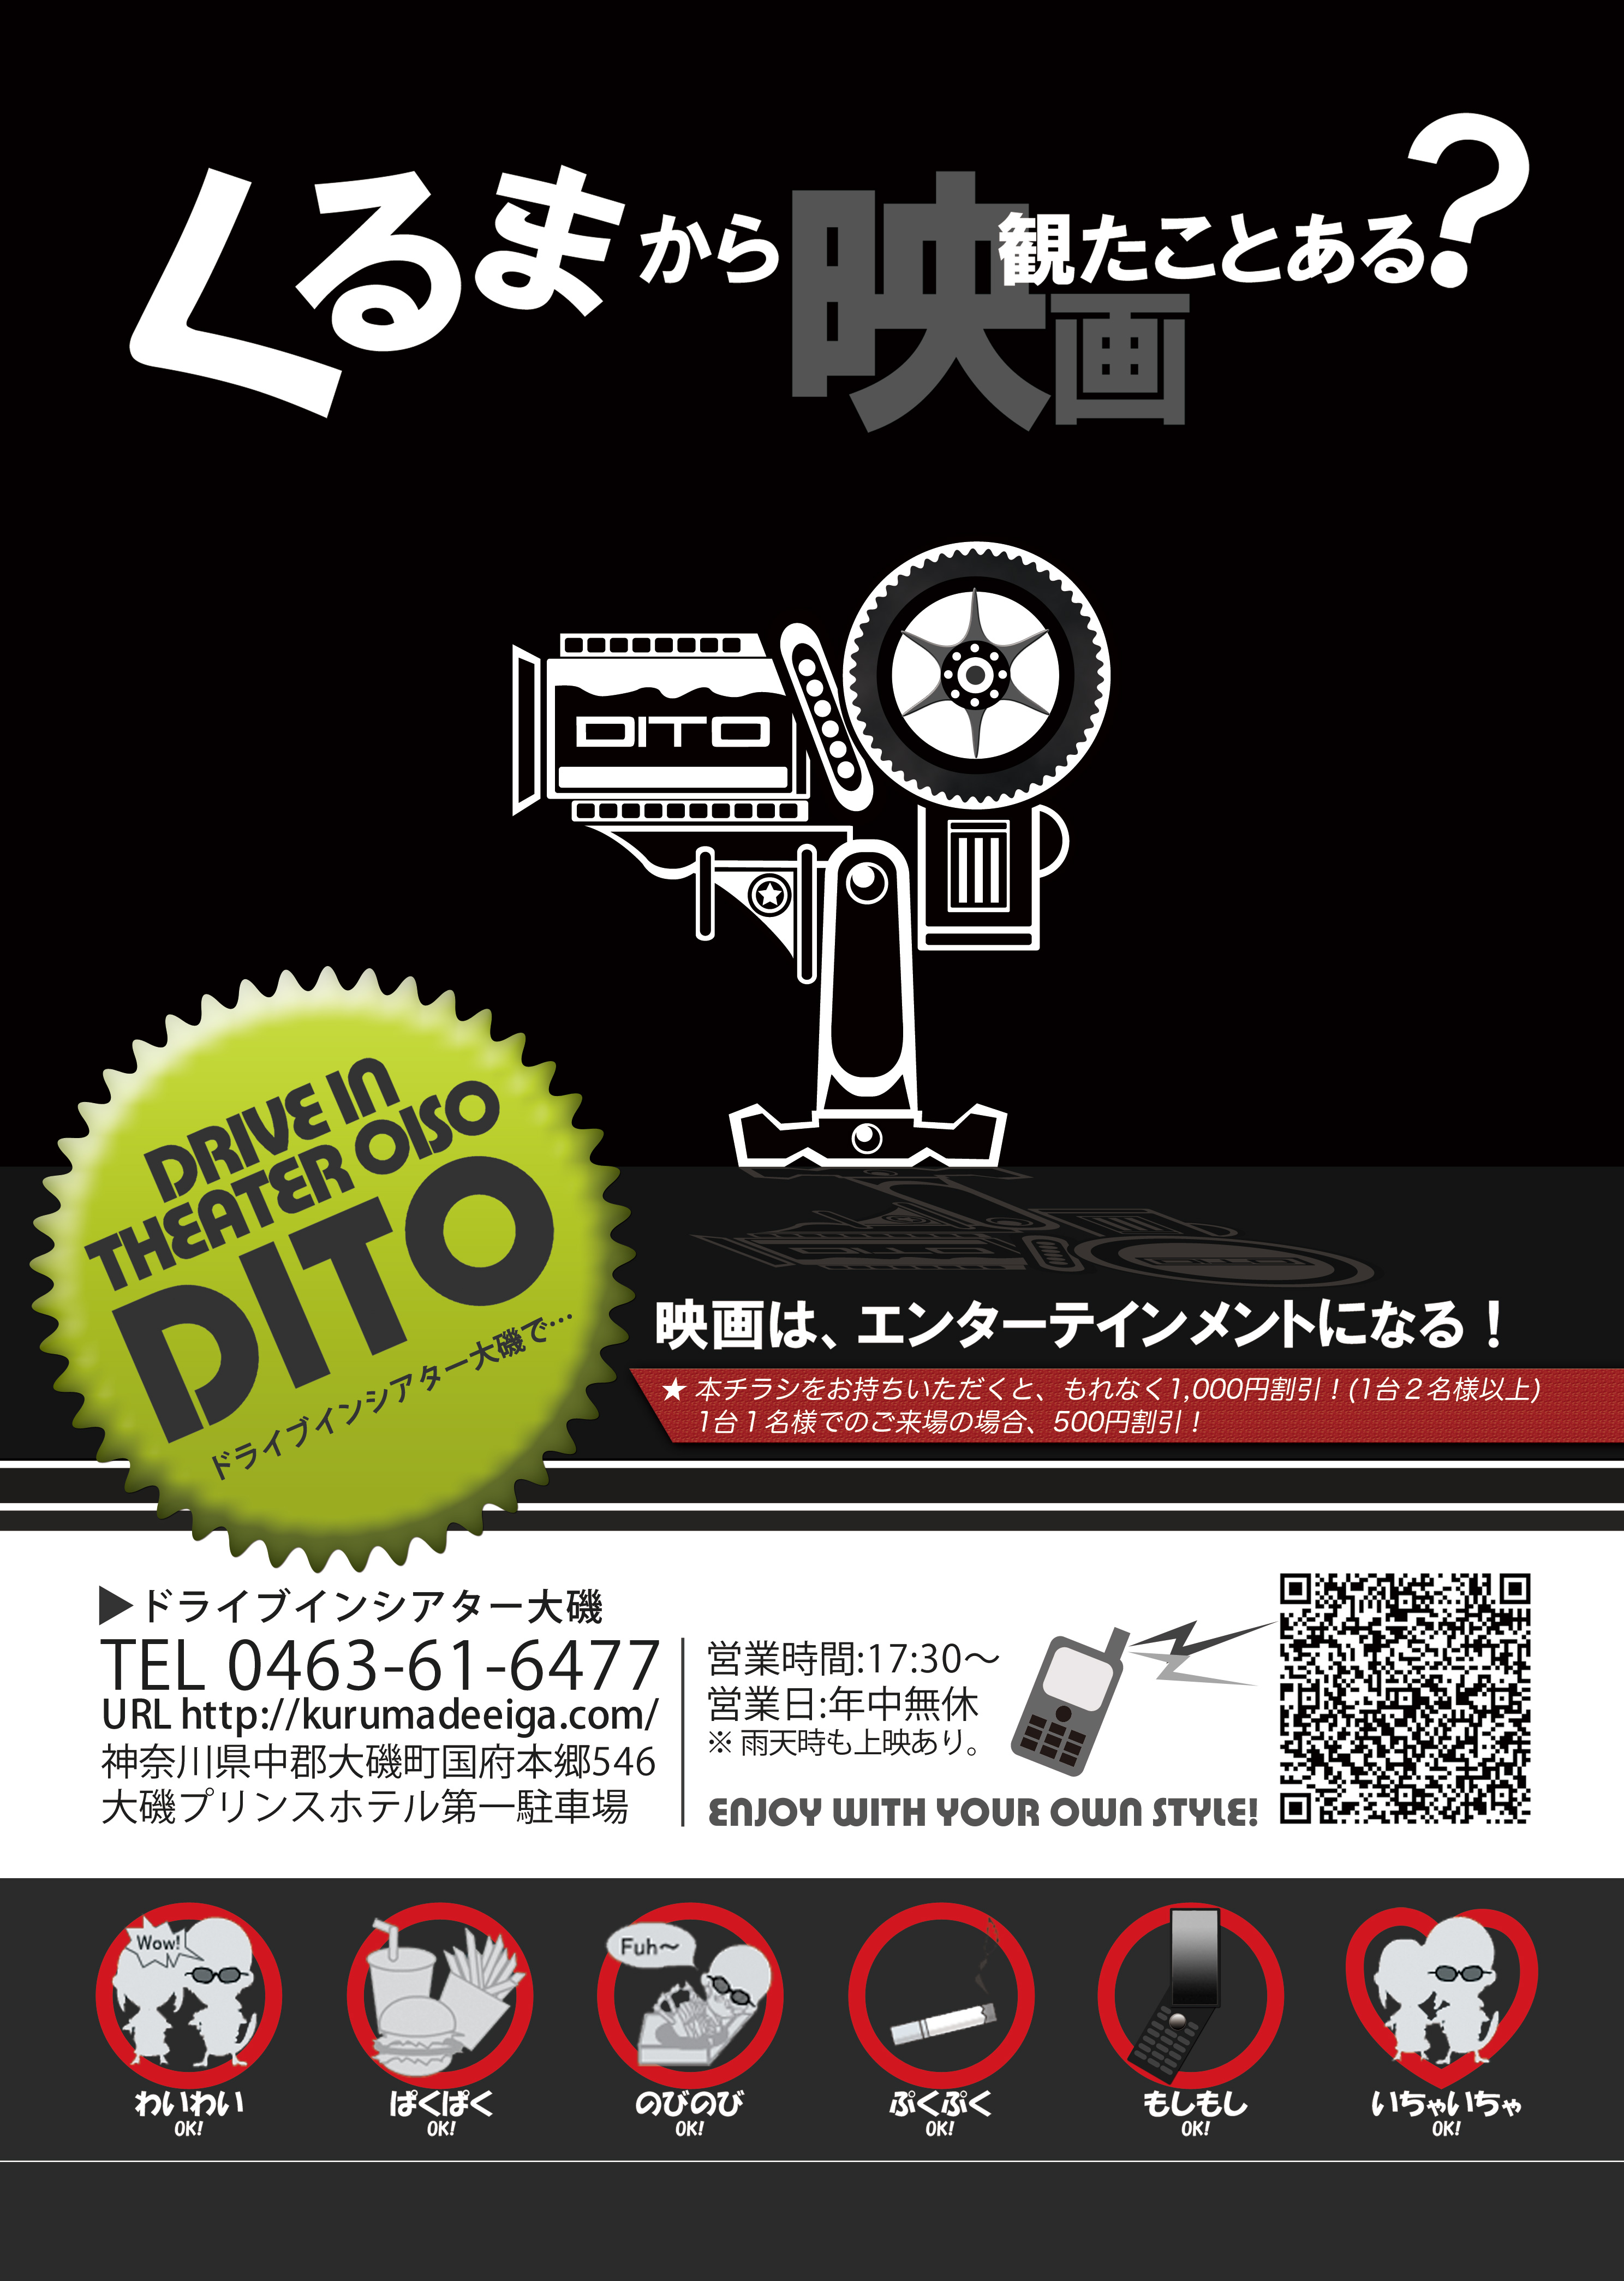 Drive In Theater Oiso